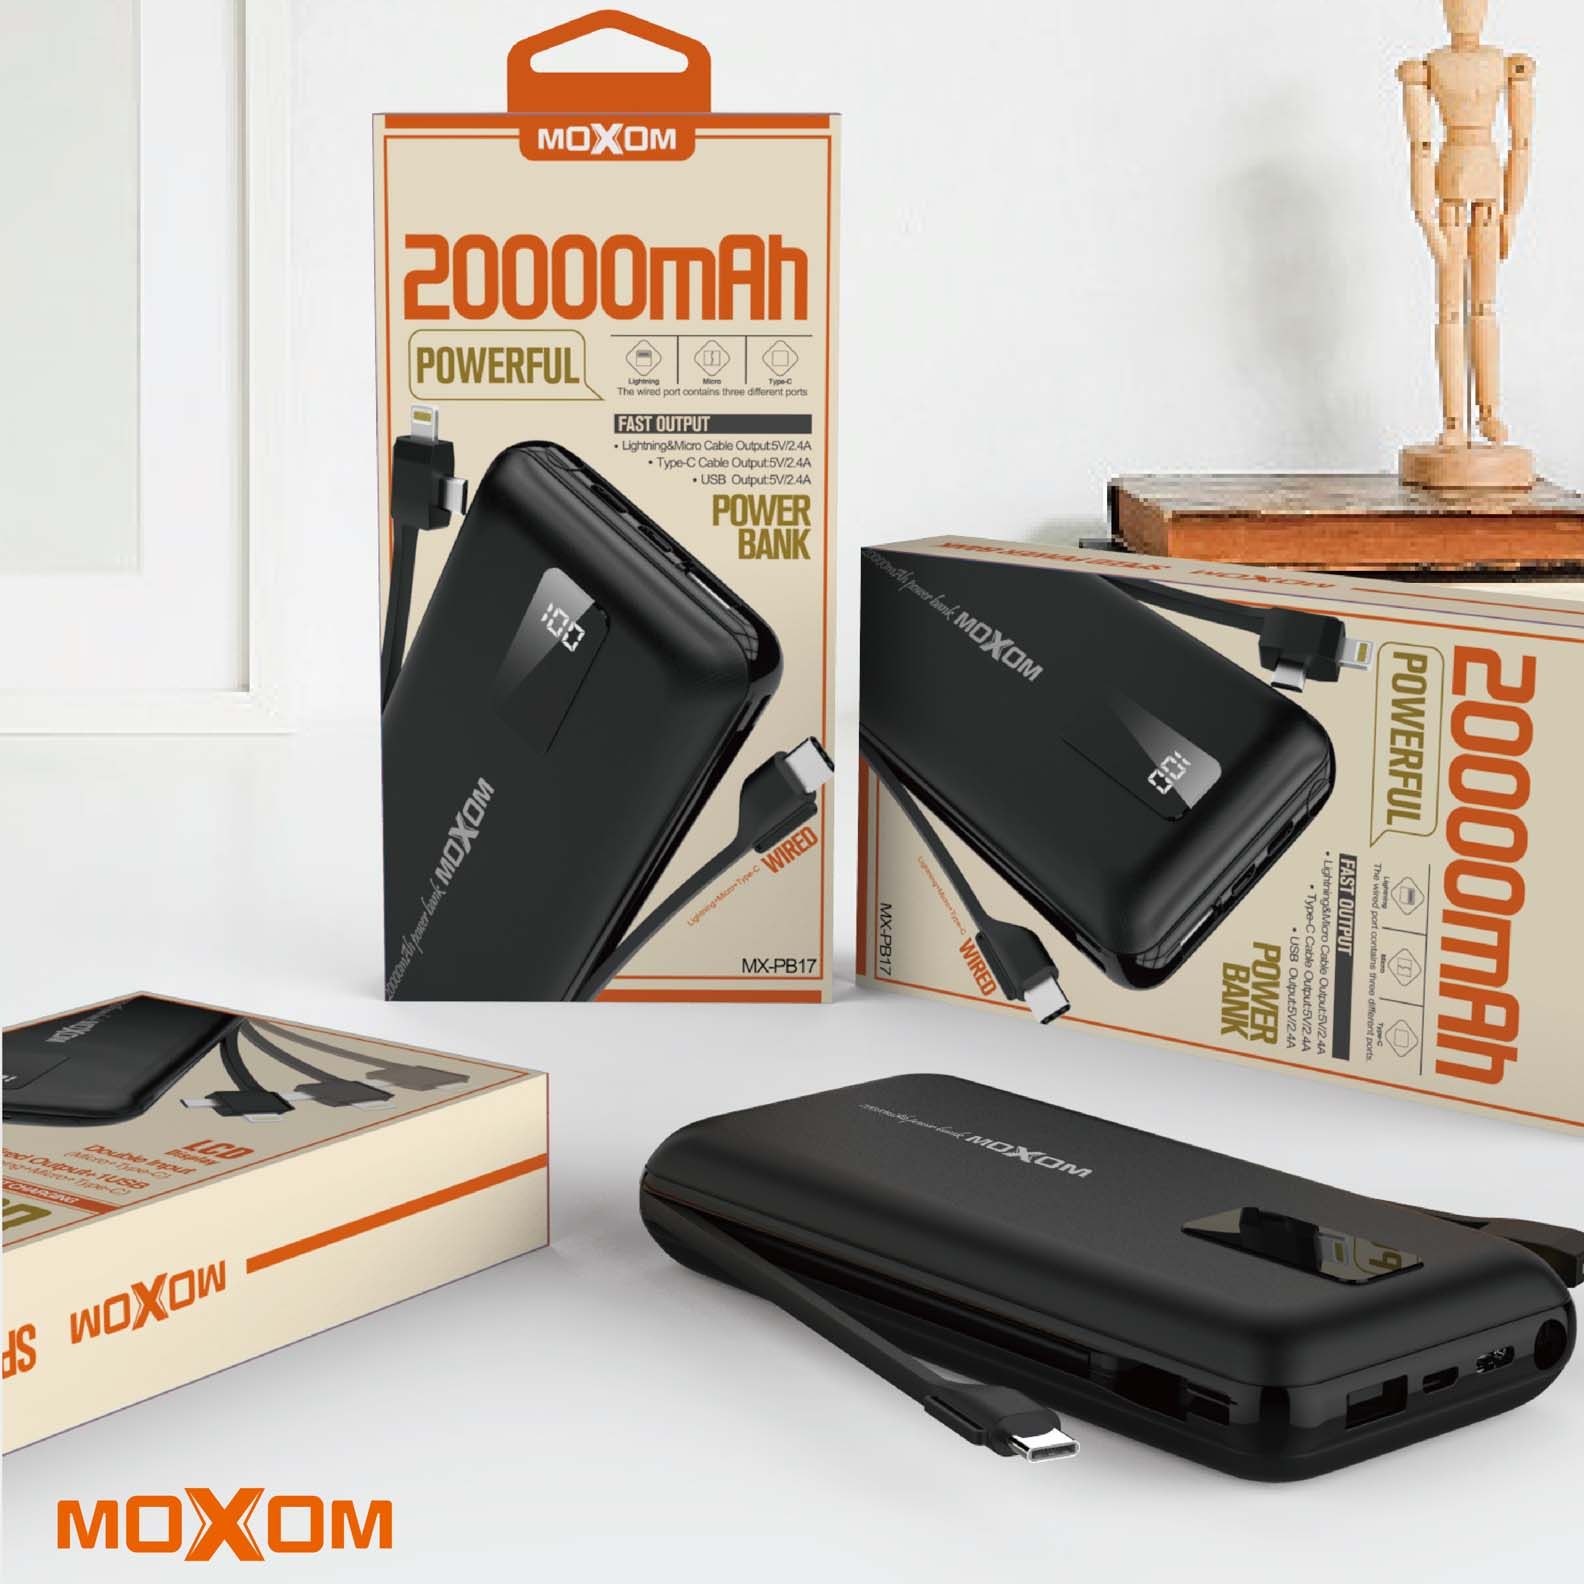 АКБ PowerBank MOXOM MX-PB17 (20000 mAh) черный